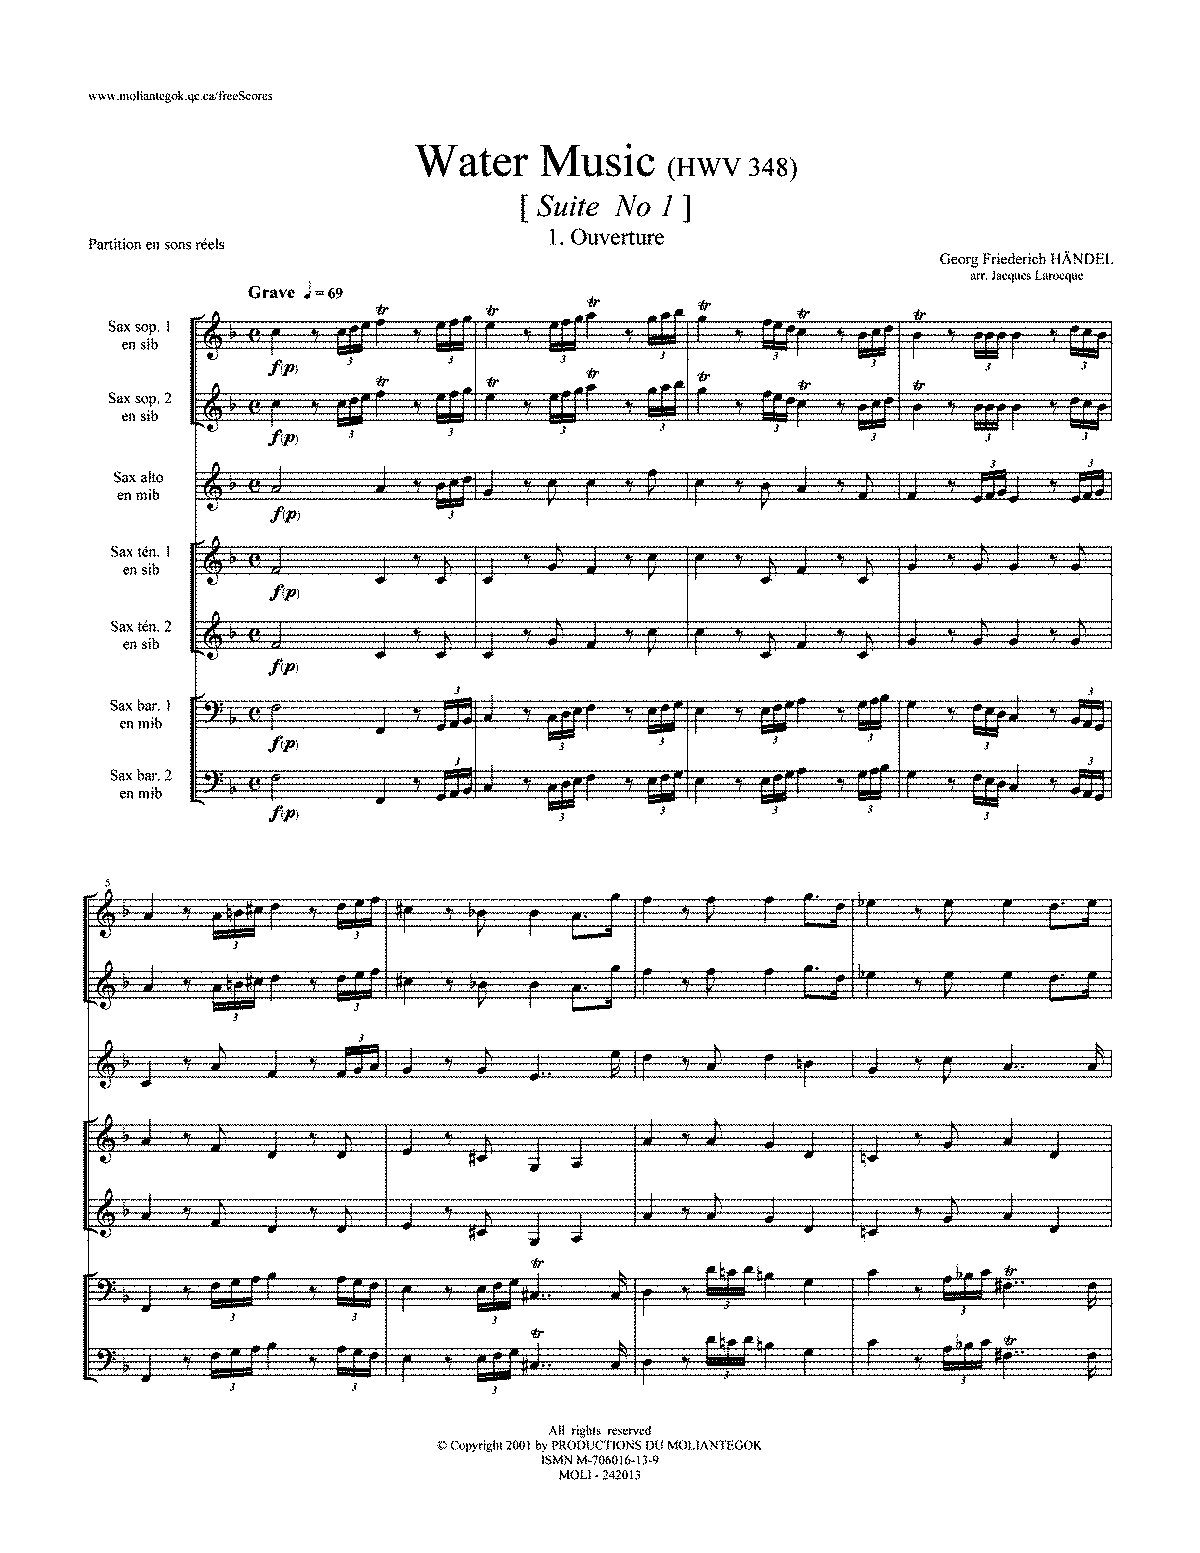 PMLP11283-Water Music-Suite-1-HWV 348 - Compl Score.pdf